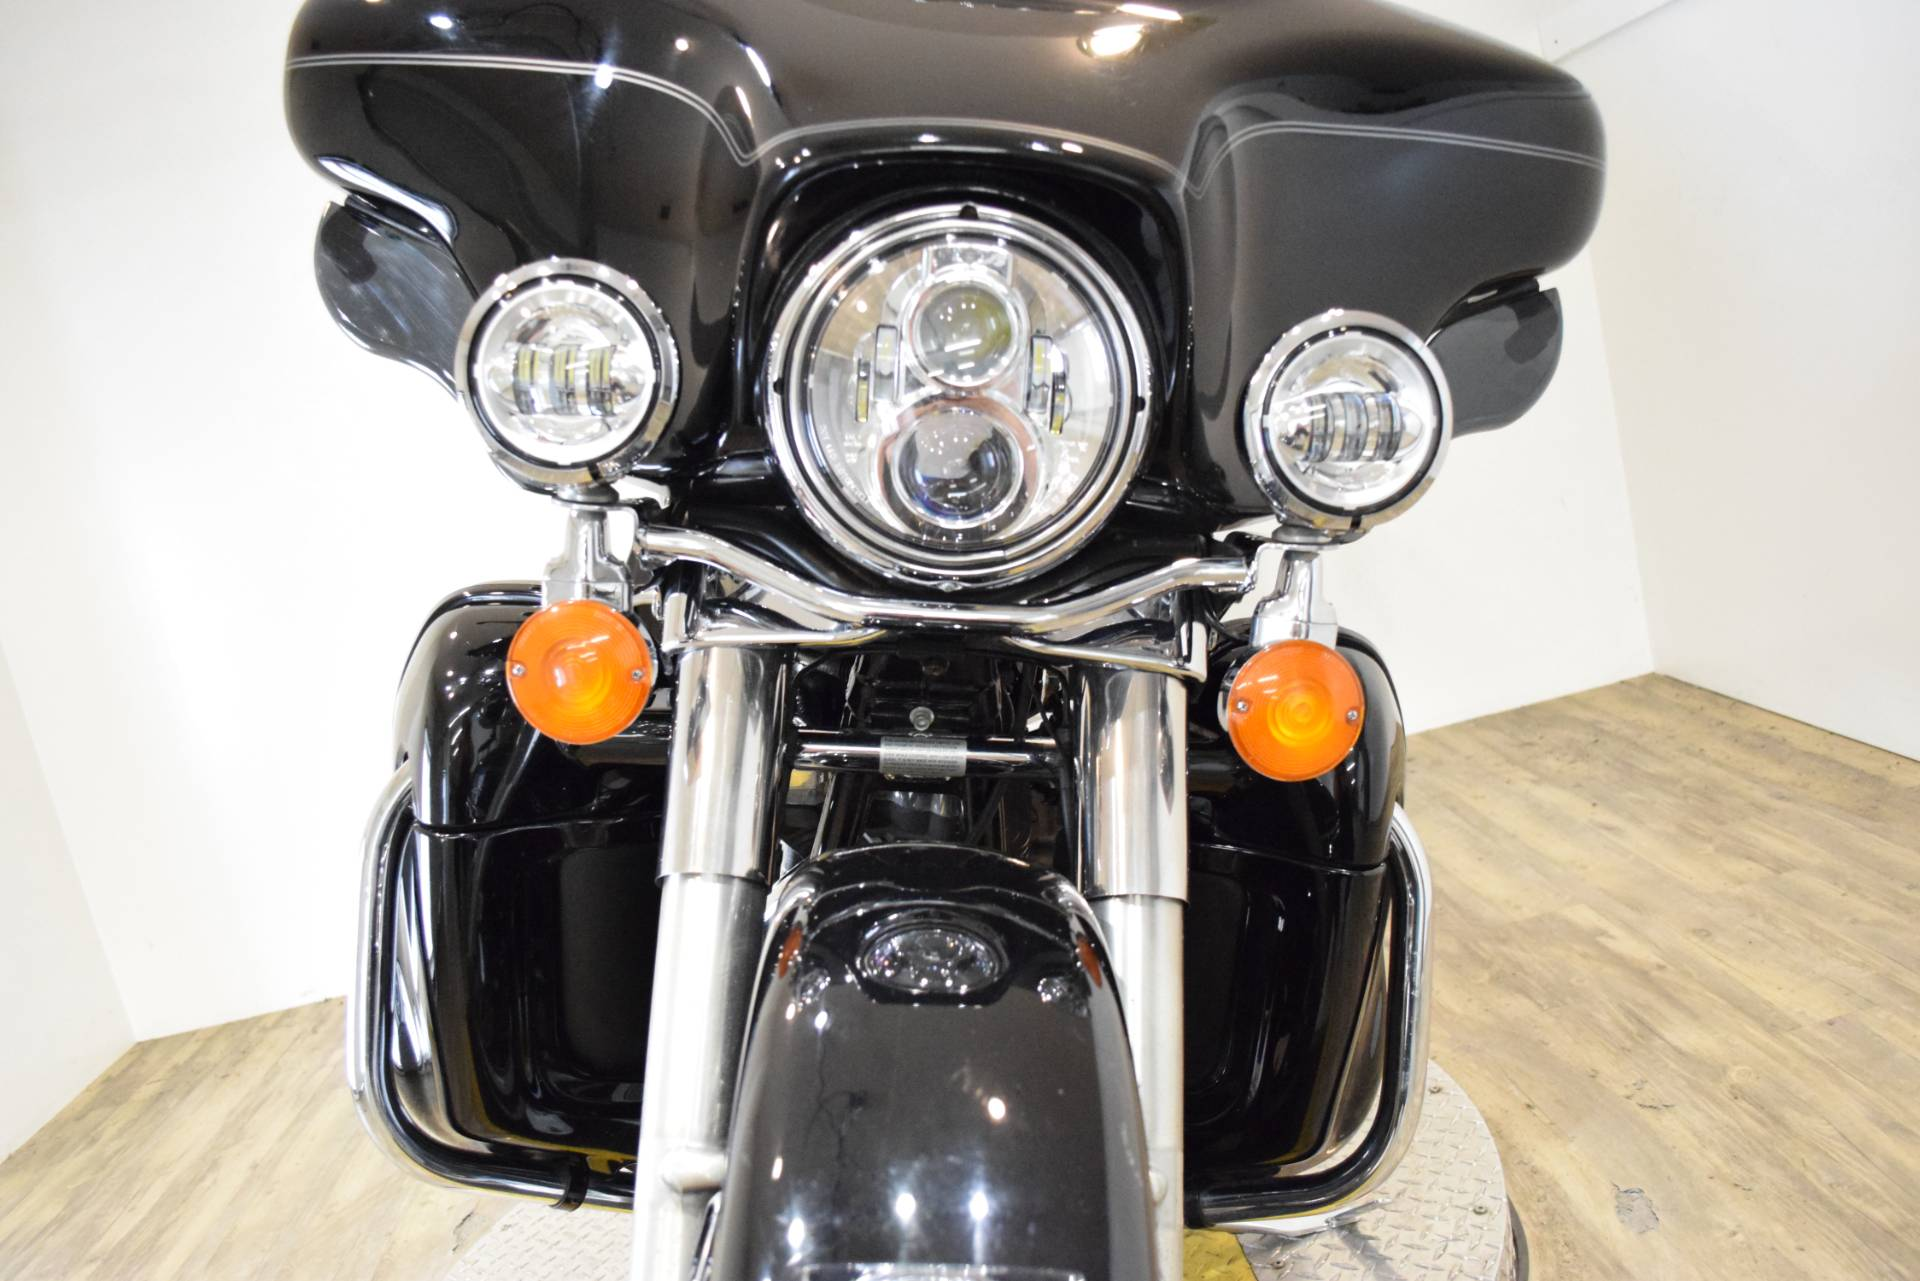 2007 Harley-Davidson FLHTC ULTRA CLASSIC in Wauconda, Illinois - Photo 14